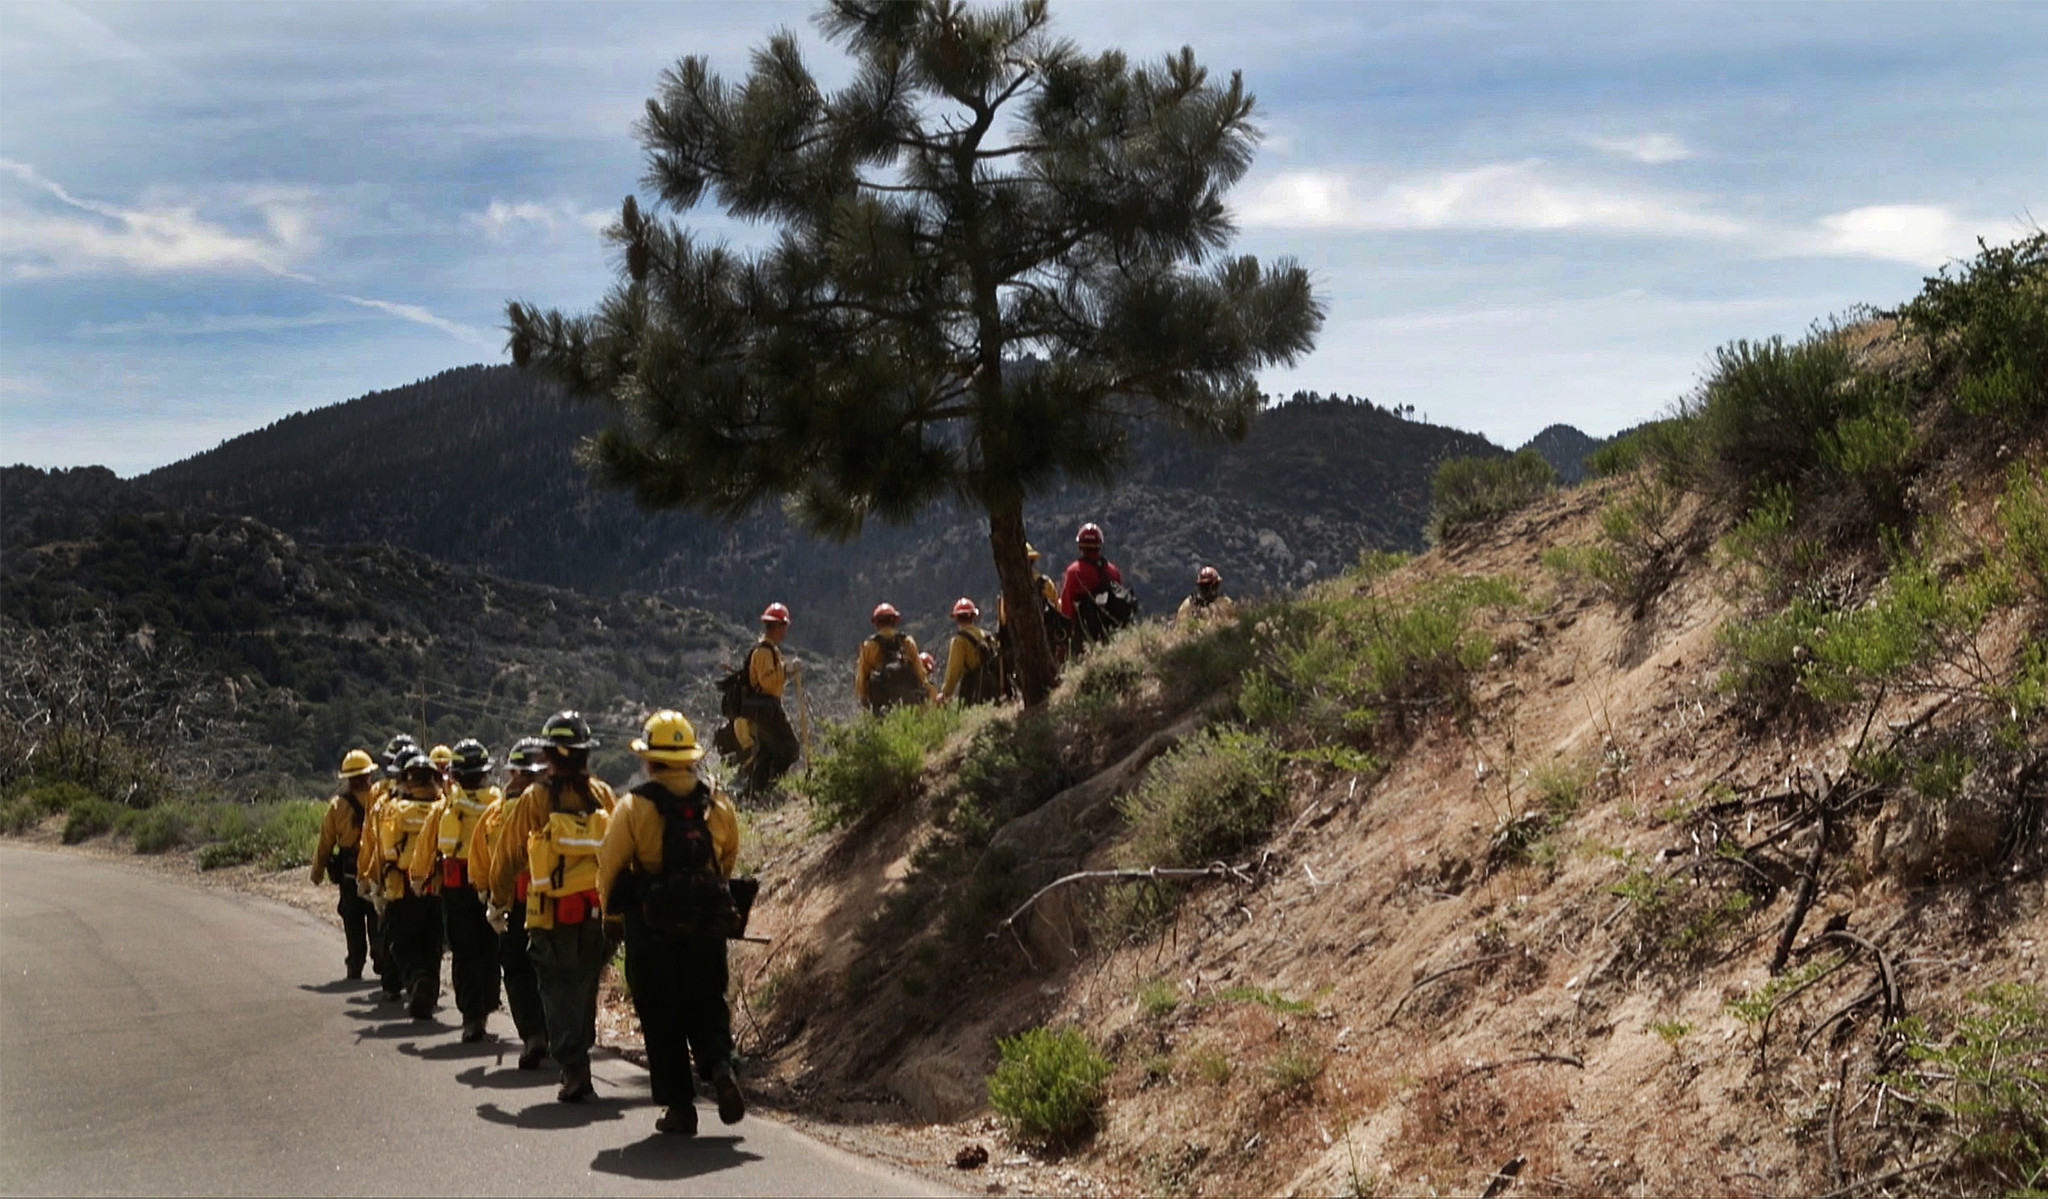 The group gathers for the class' last drill, designed to simulate fully containing a fire on a brush-choked hillside.